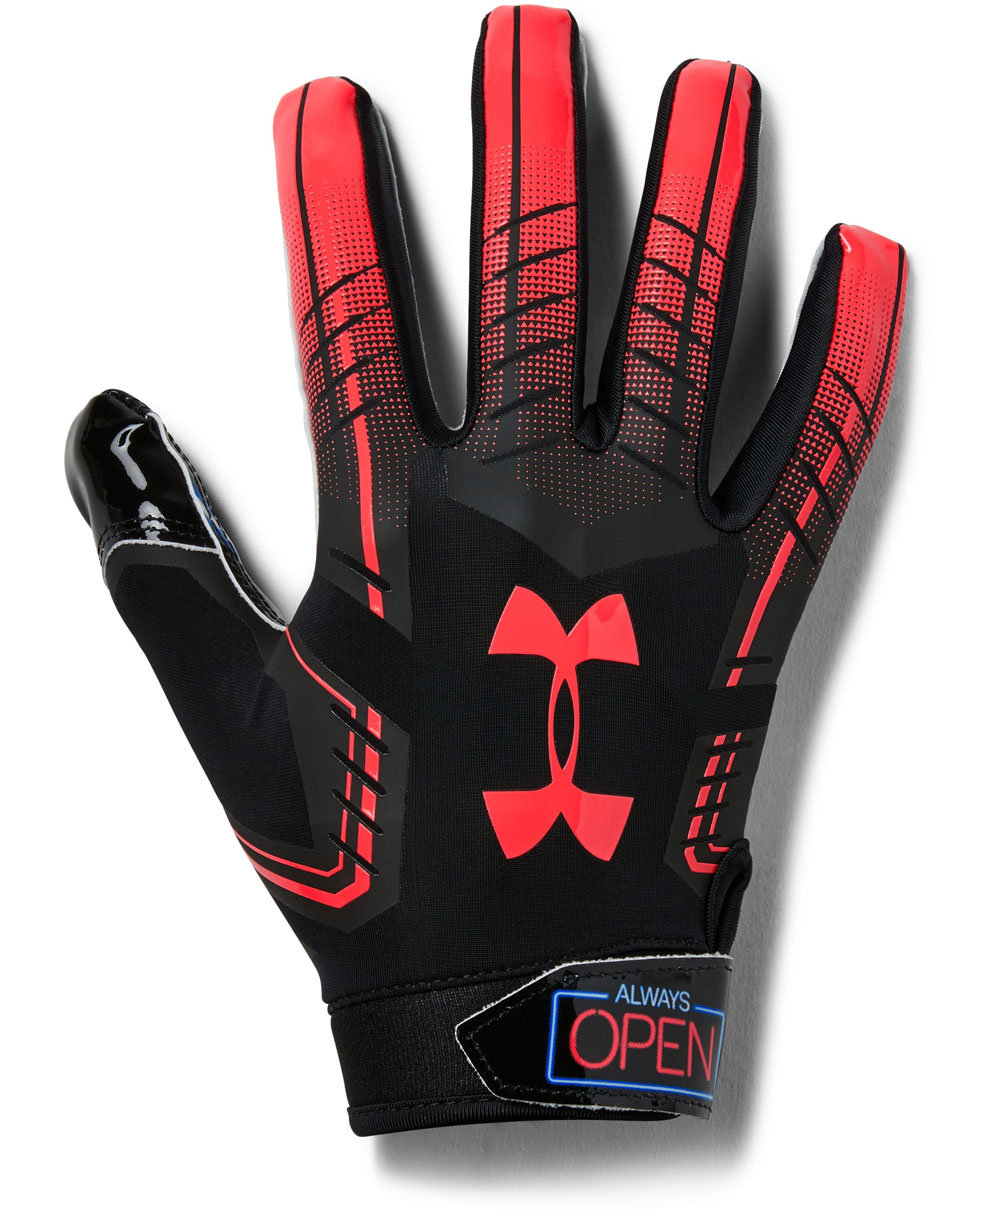 Under Armour F6 Novelty Men s Football Gloves Black 001 a303f90df3